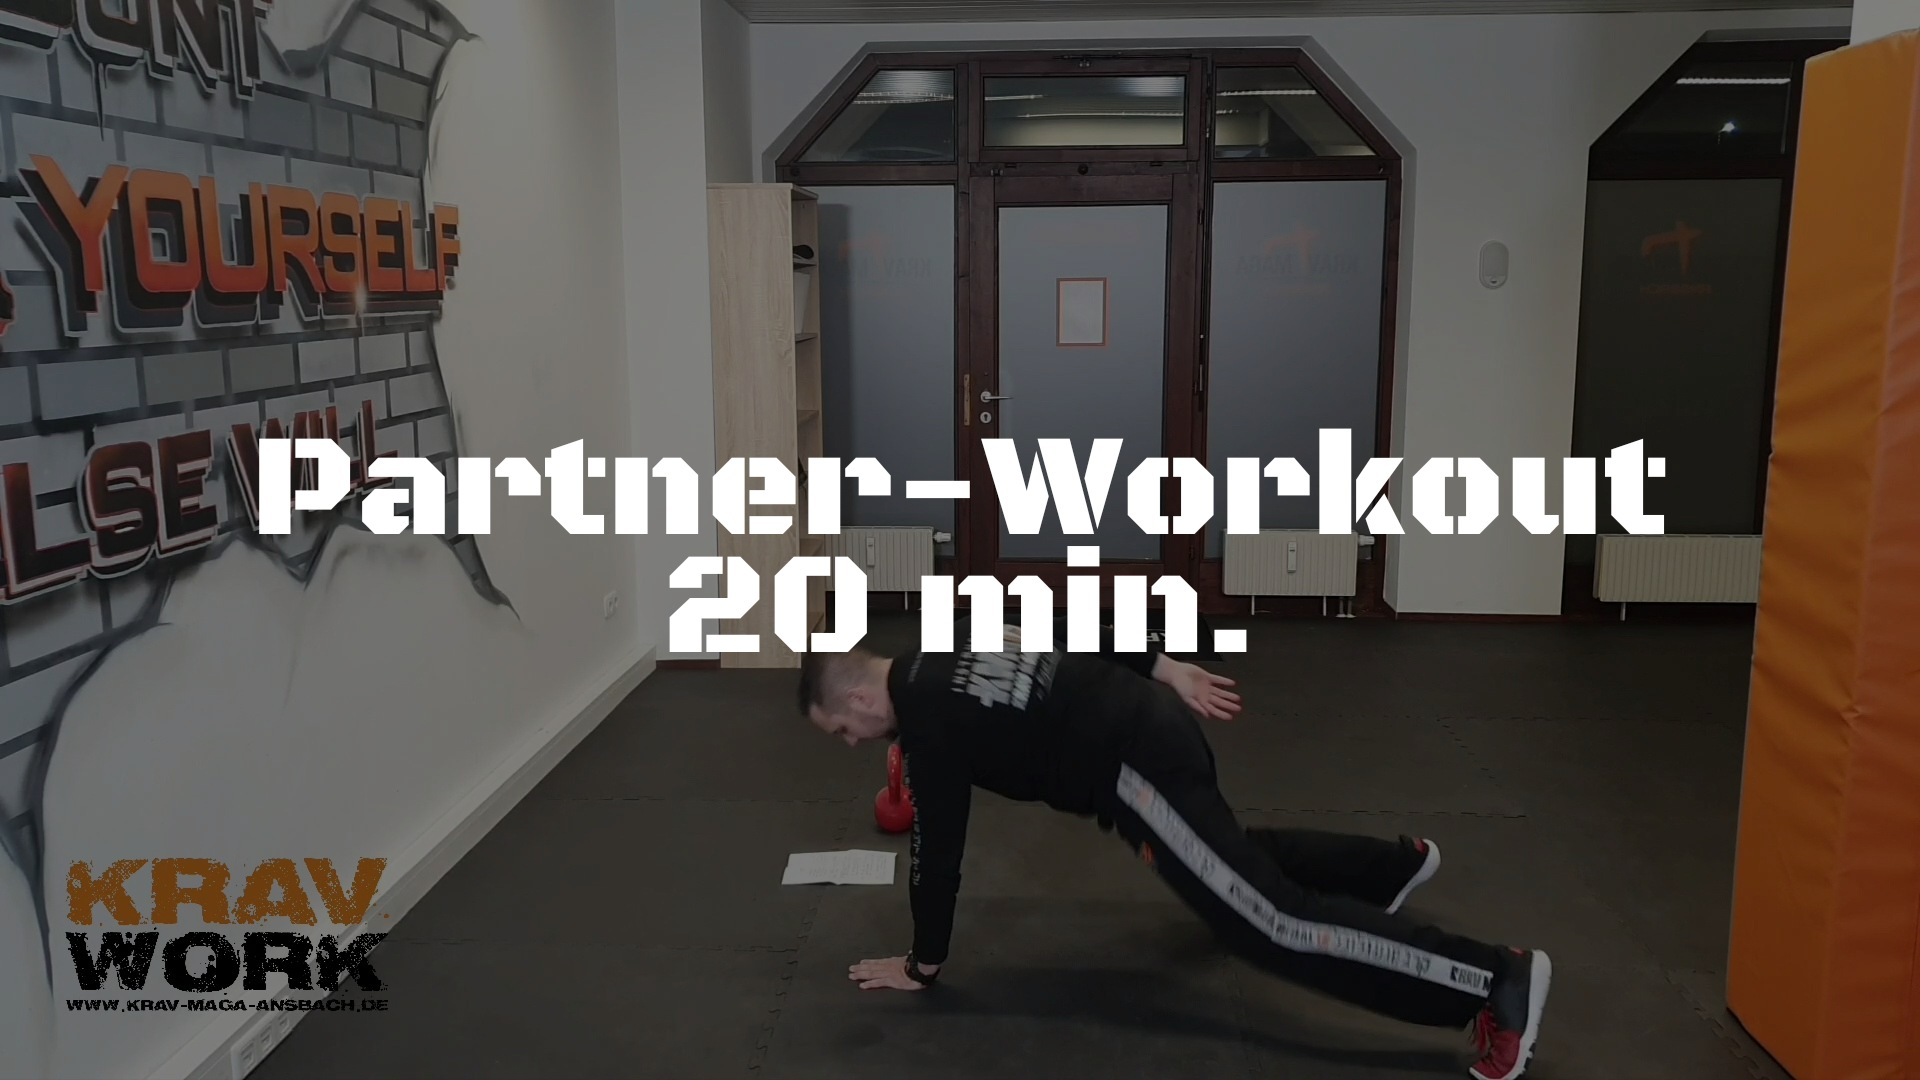 KRAV WORK | Partner-Workout 20 min.